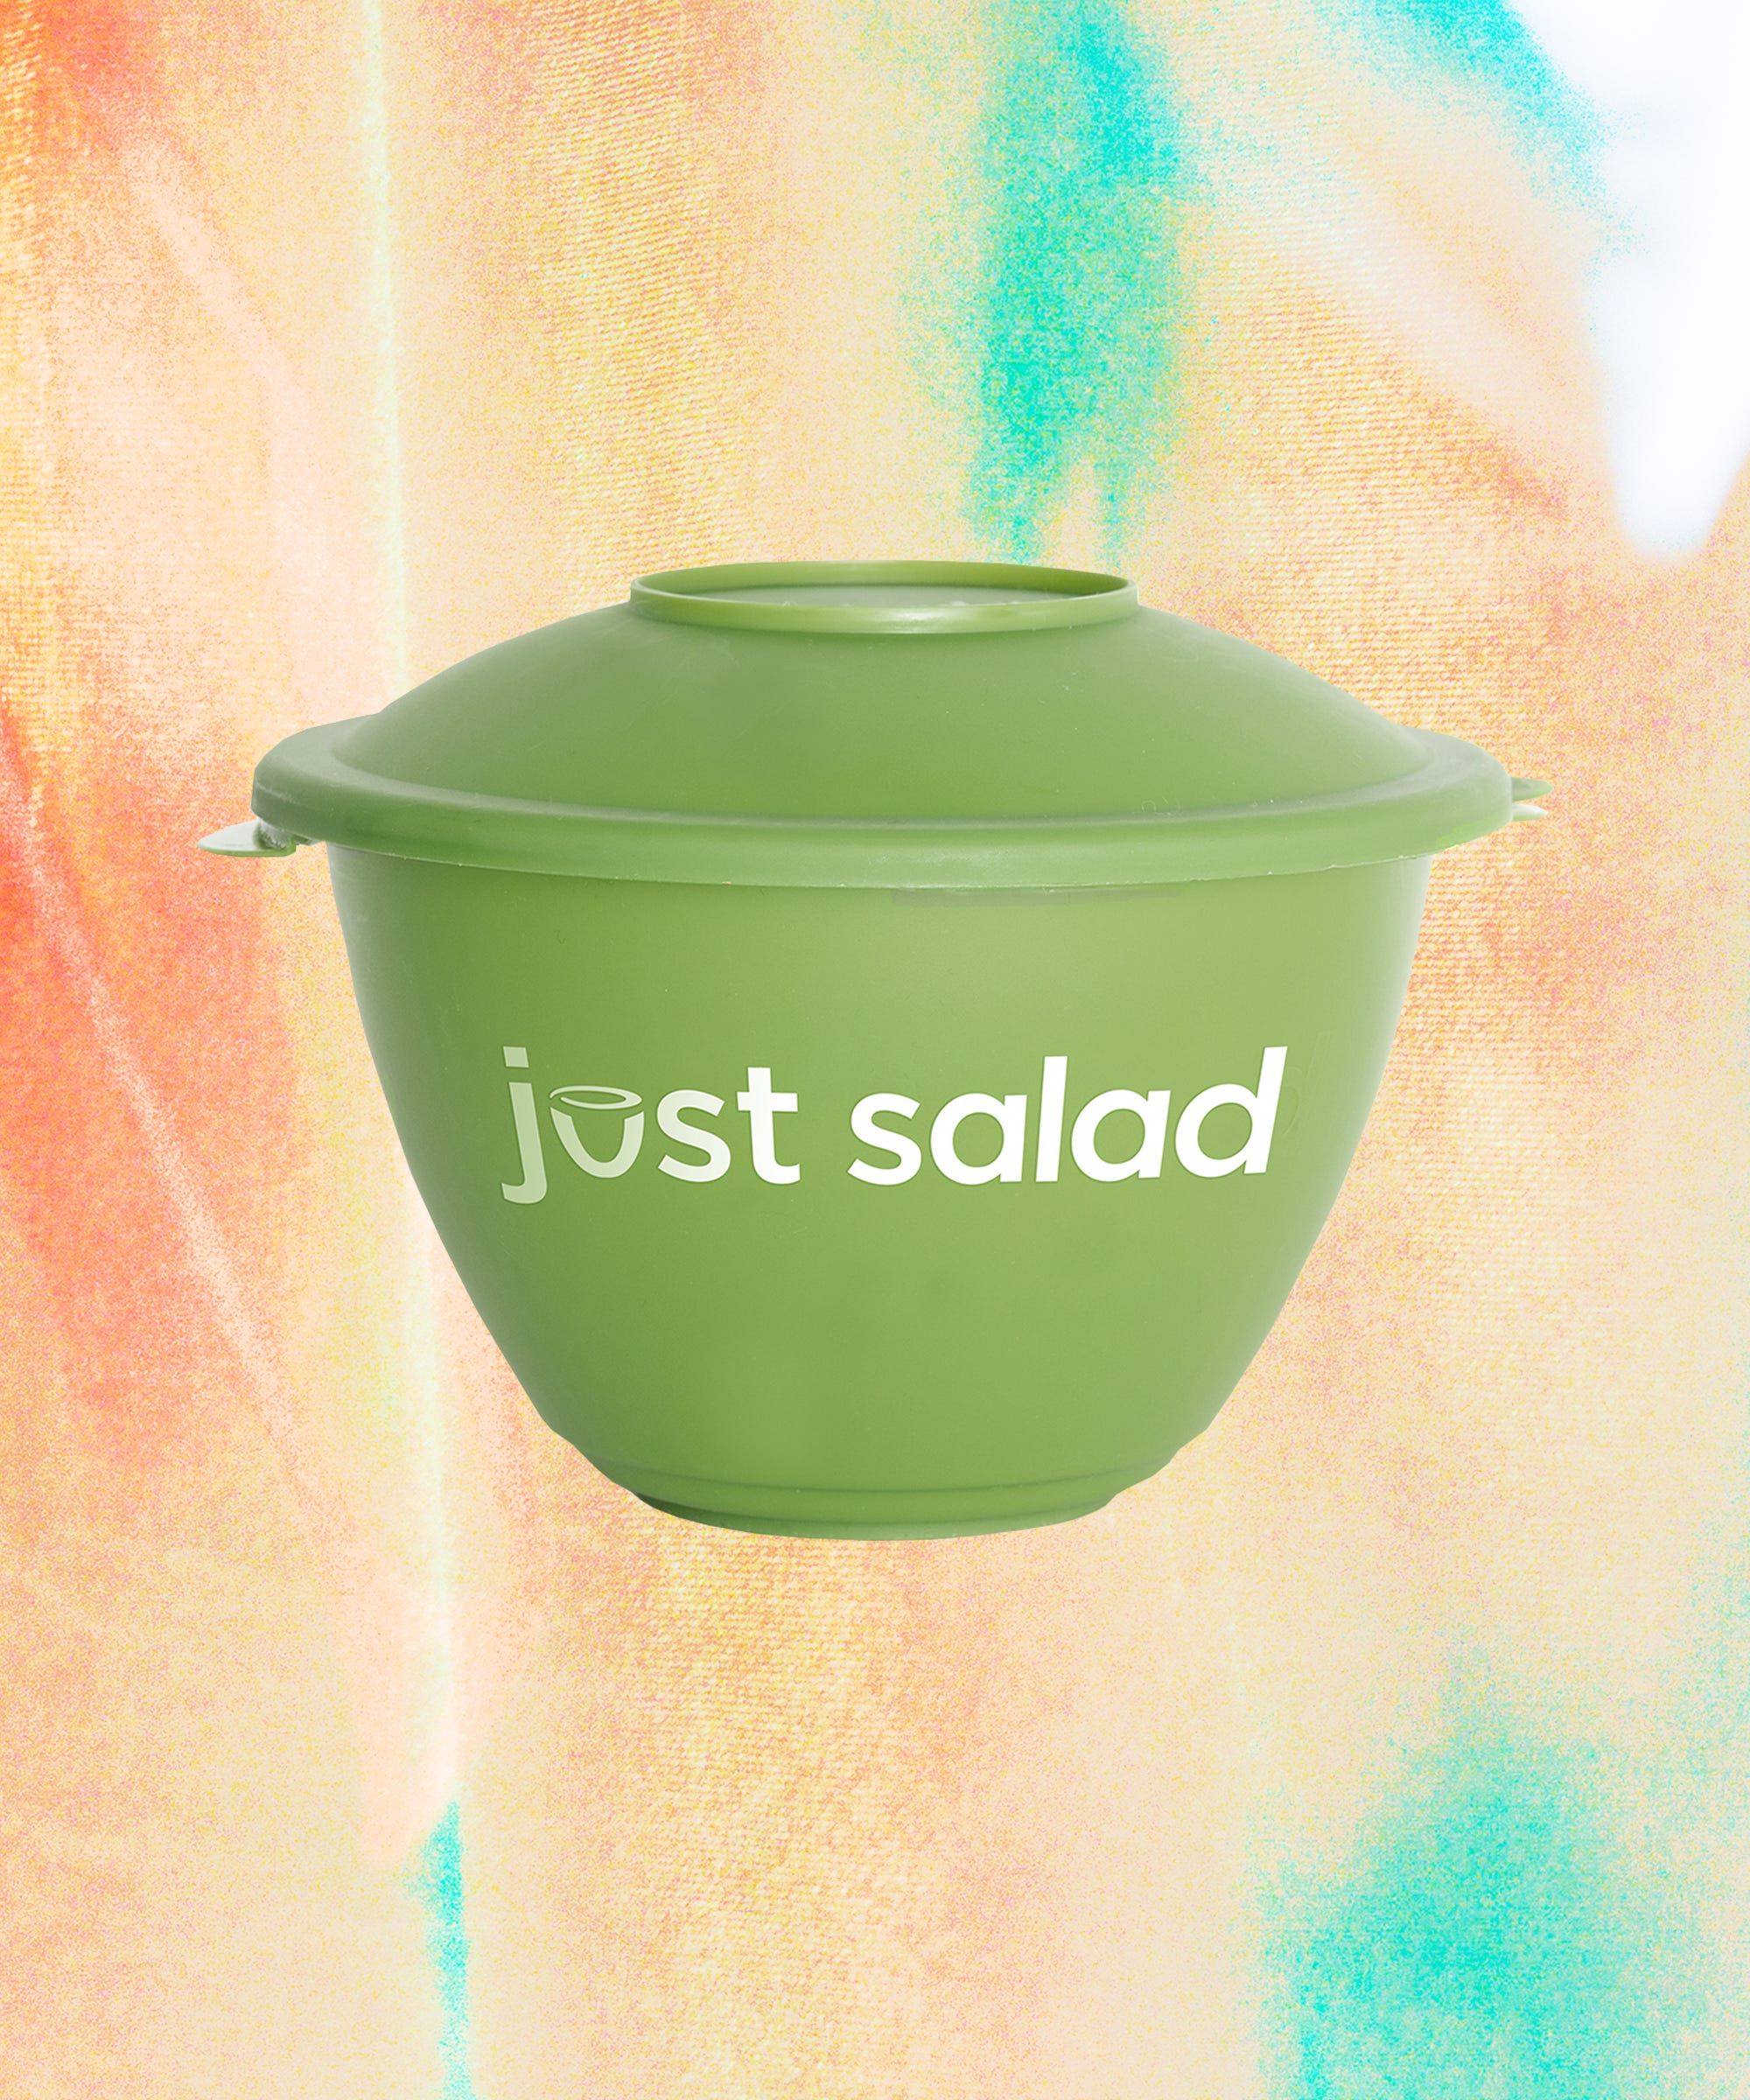 These Spots Give Discounts For Bringing Your Own Bowls, Cups & Bags